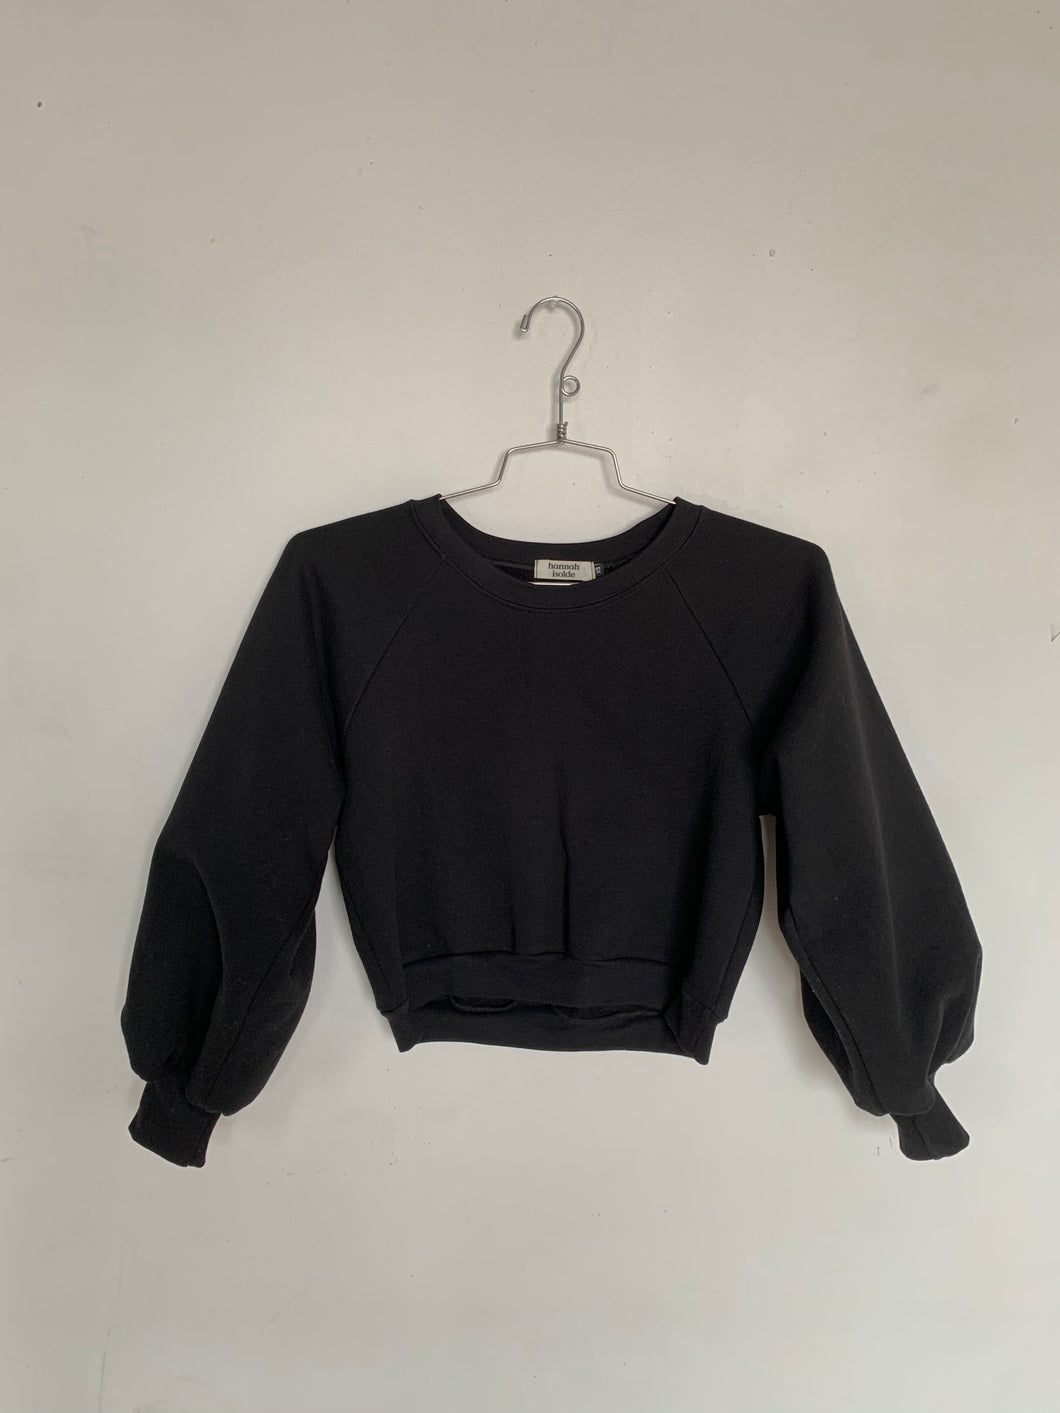 SIGRID Sweater - Black (Extra Small)